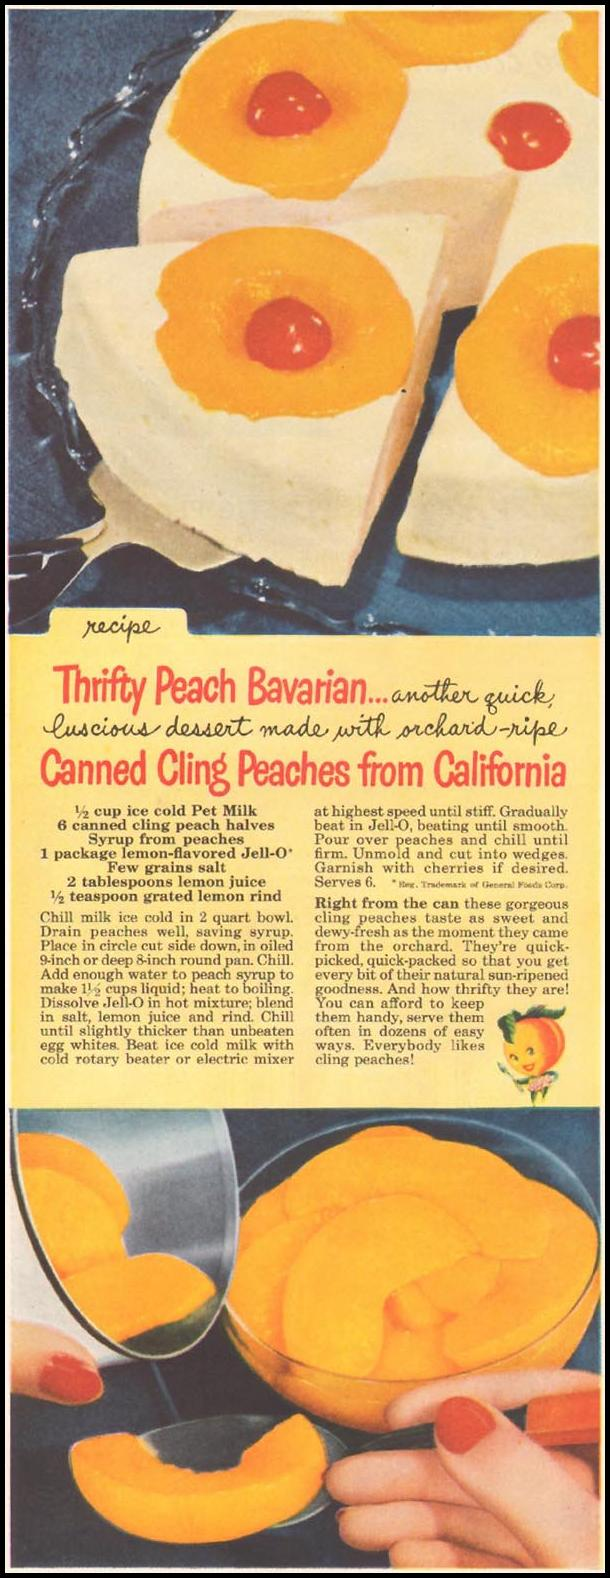 CALIFORNIA CLING PEACHES LADIES' HOME JOURNAL 11/01/1950 p. 232